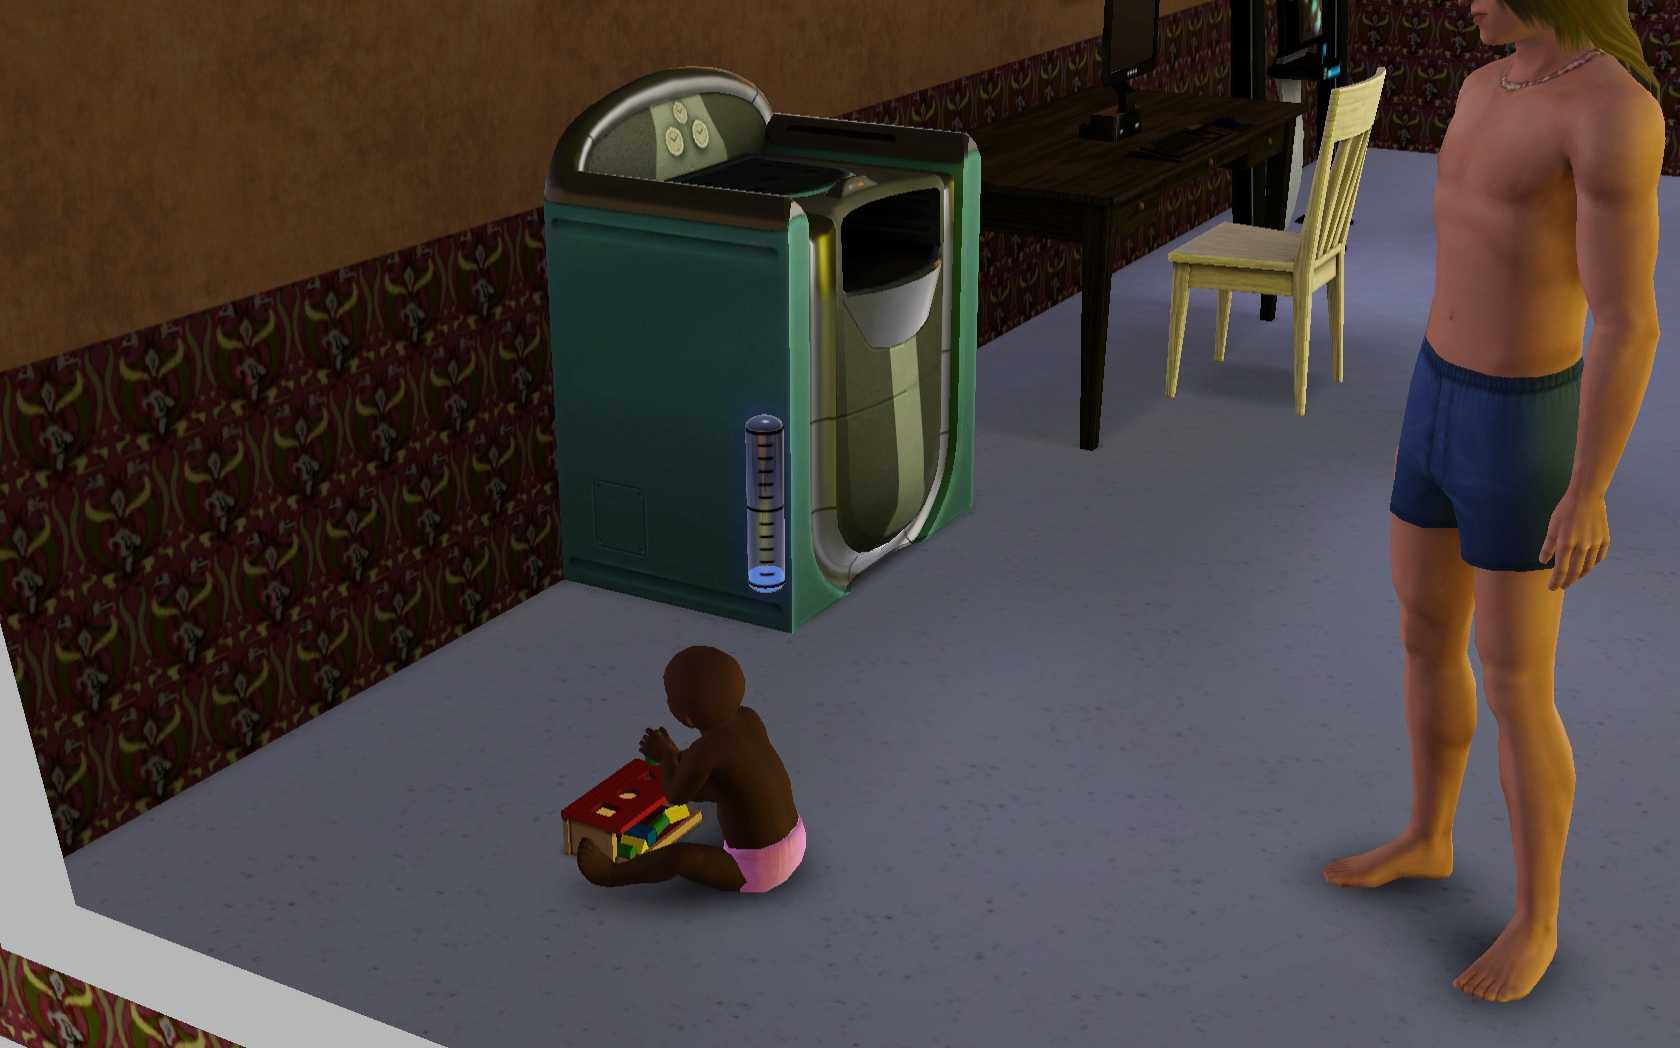 Sims 3 Parenting: Toddler Playing With Peg Blocks